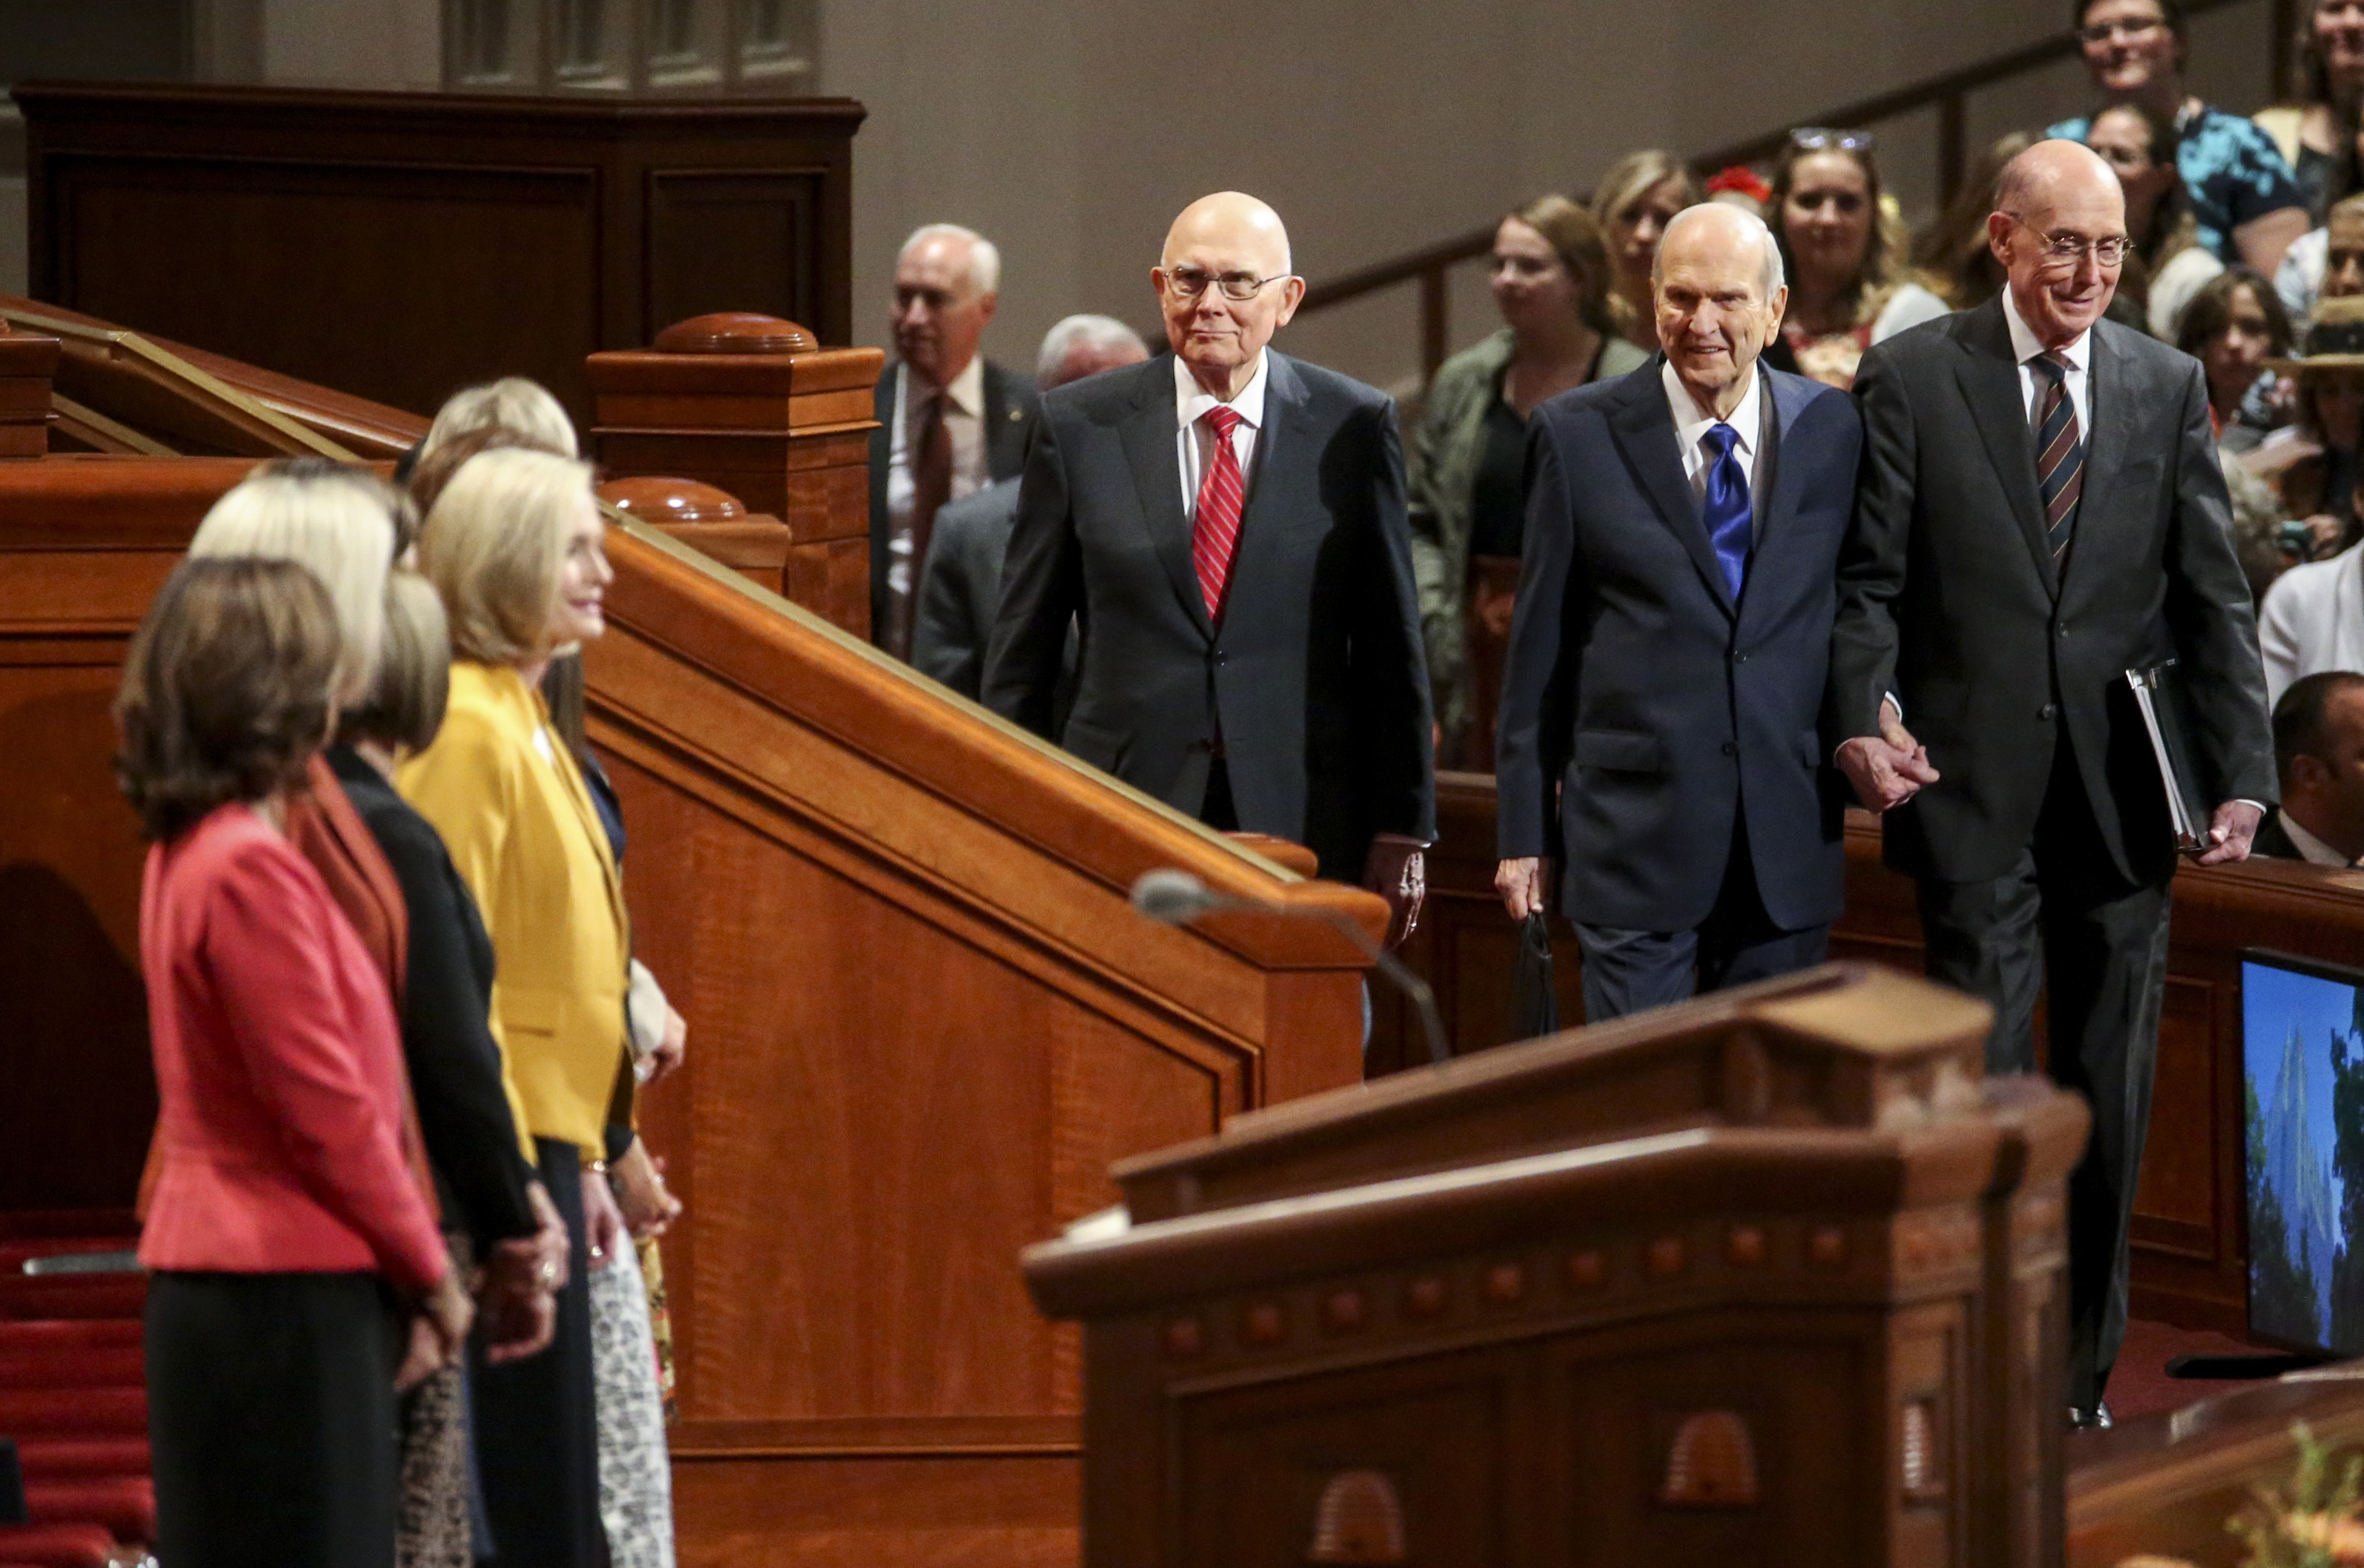 President Russell M. Nelson, center, walks into the Conference Center with President Henry B. Eyring, second counselor in the First Presidency, right, and President Dallin H. Oaks, first counselor in the First Presidency, before the general women's session of the 189th Semiannual General Conference of The Church of Jesus Christ of Latter-day Saints in the Conference Center in Salt Lake City on Saturday, Oct. 5, 2019.